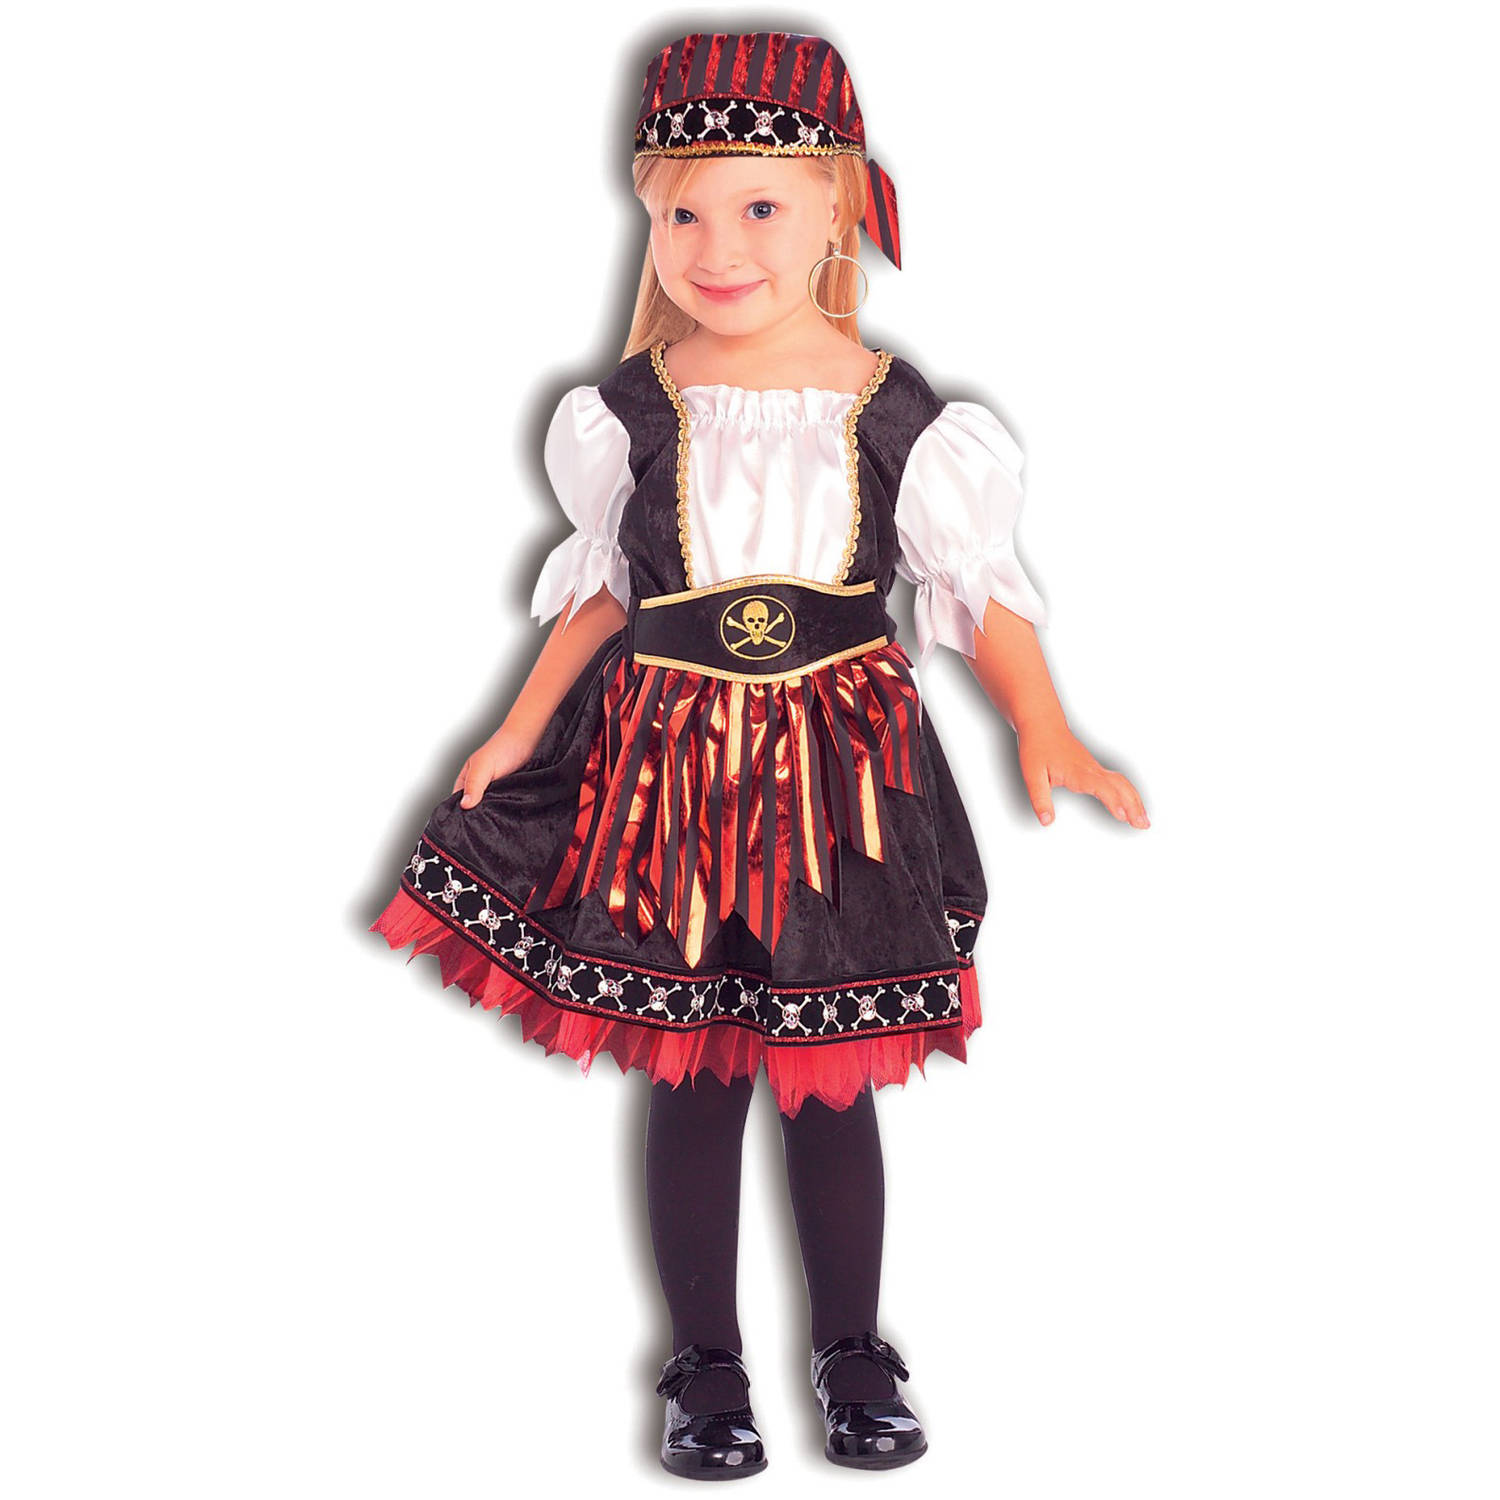 Lil' Pirate Cutie Child Halloween Costume